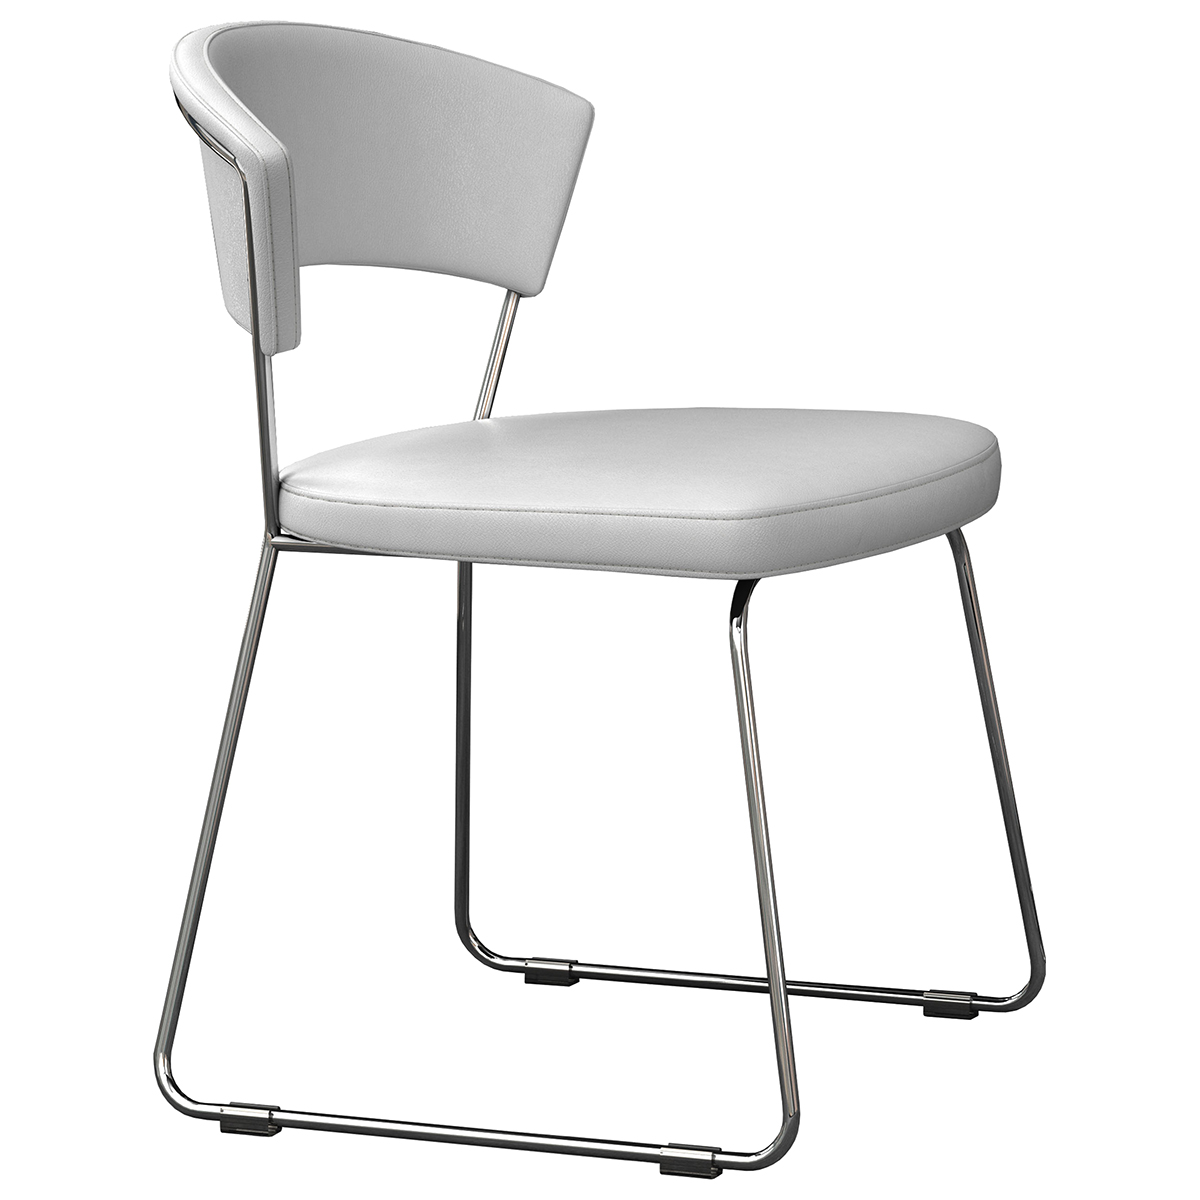 modloft dining chair round table 6 chairs dimensions delancy